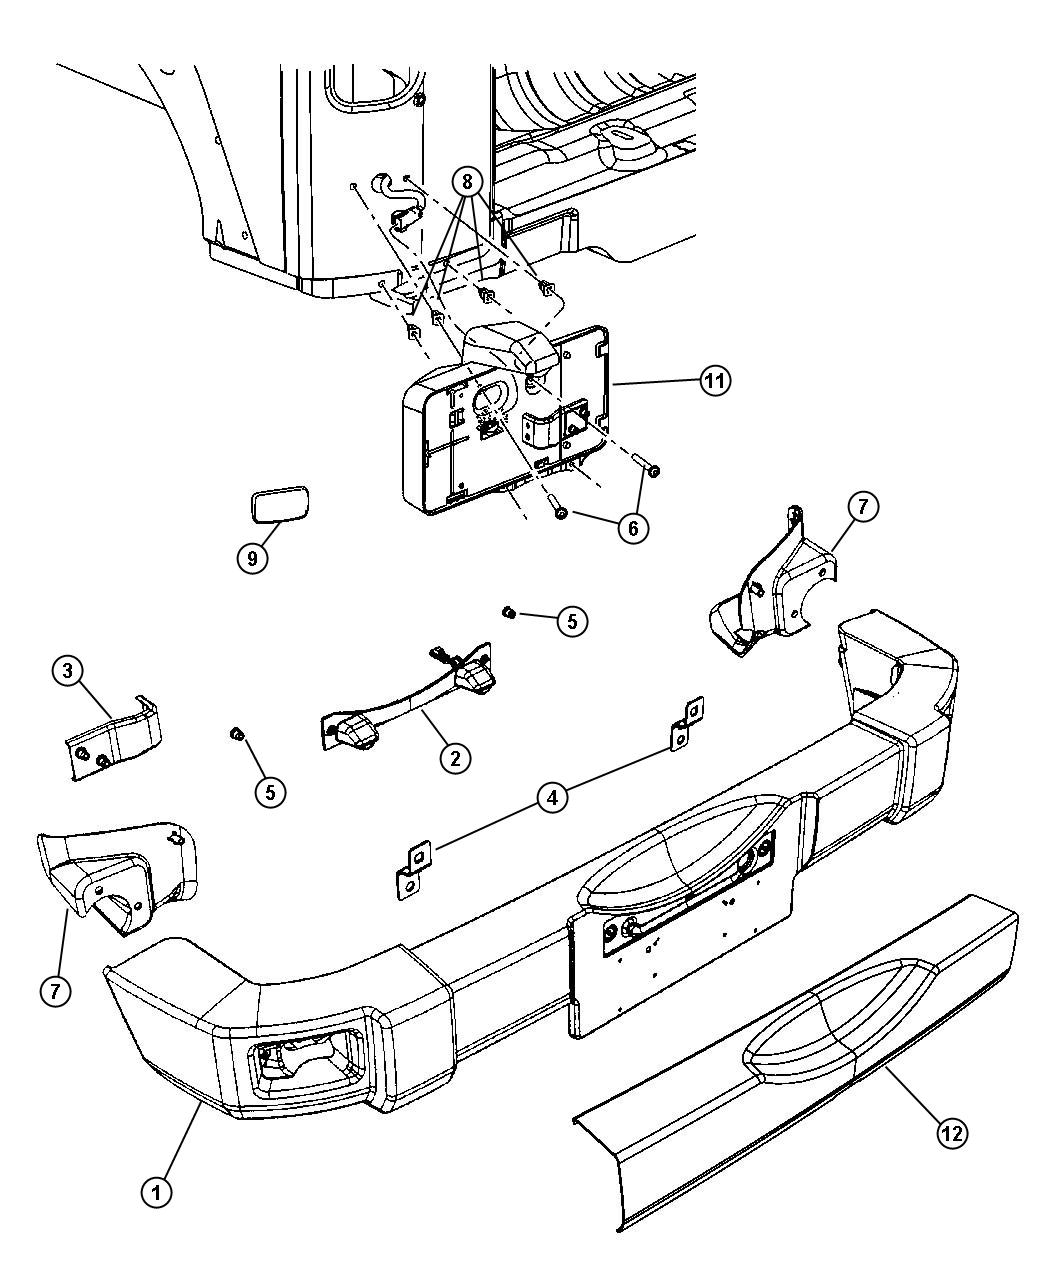 Jeep Wrangler Bumper Parts Diagram Jeep Free Engine